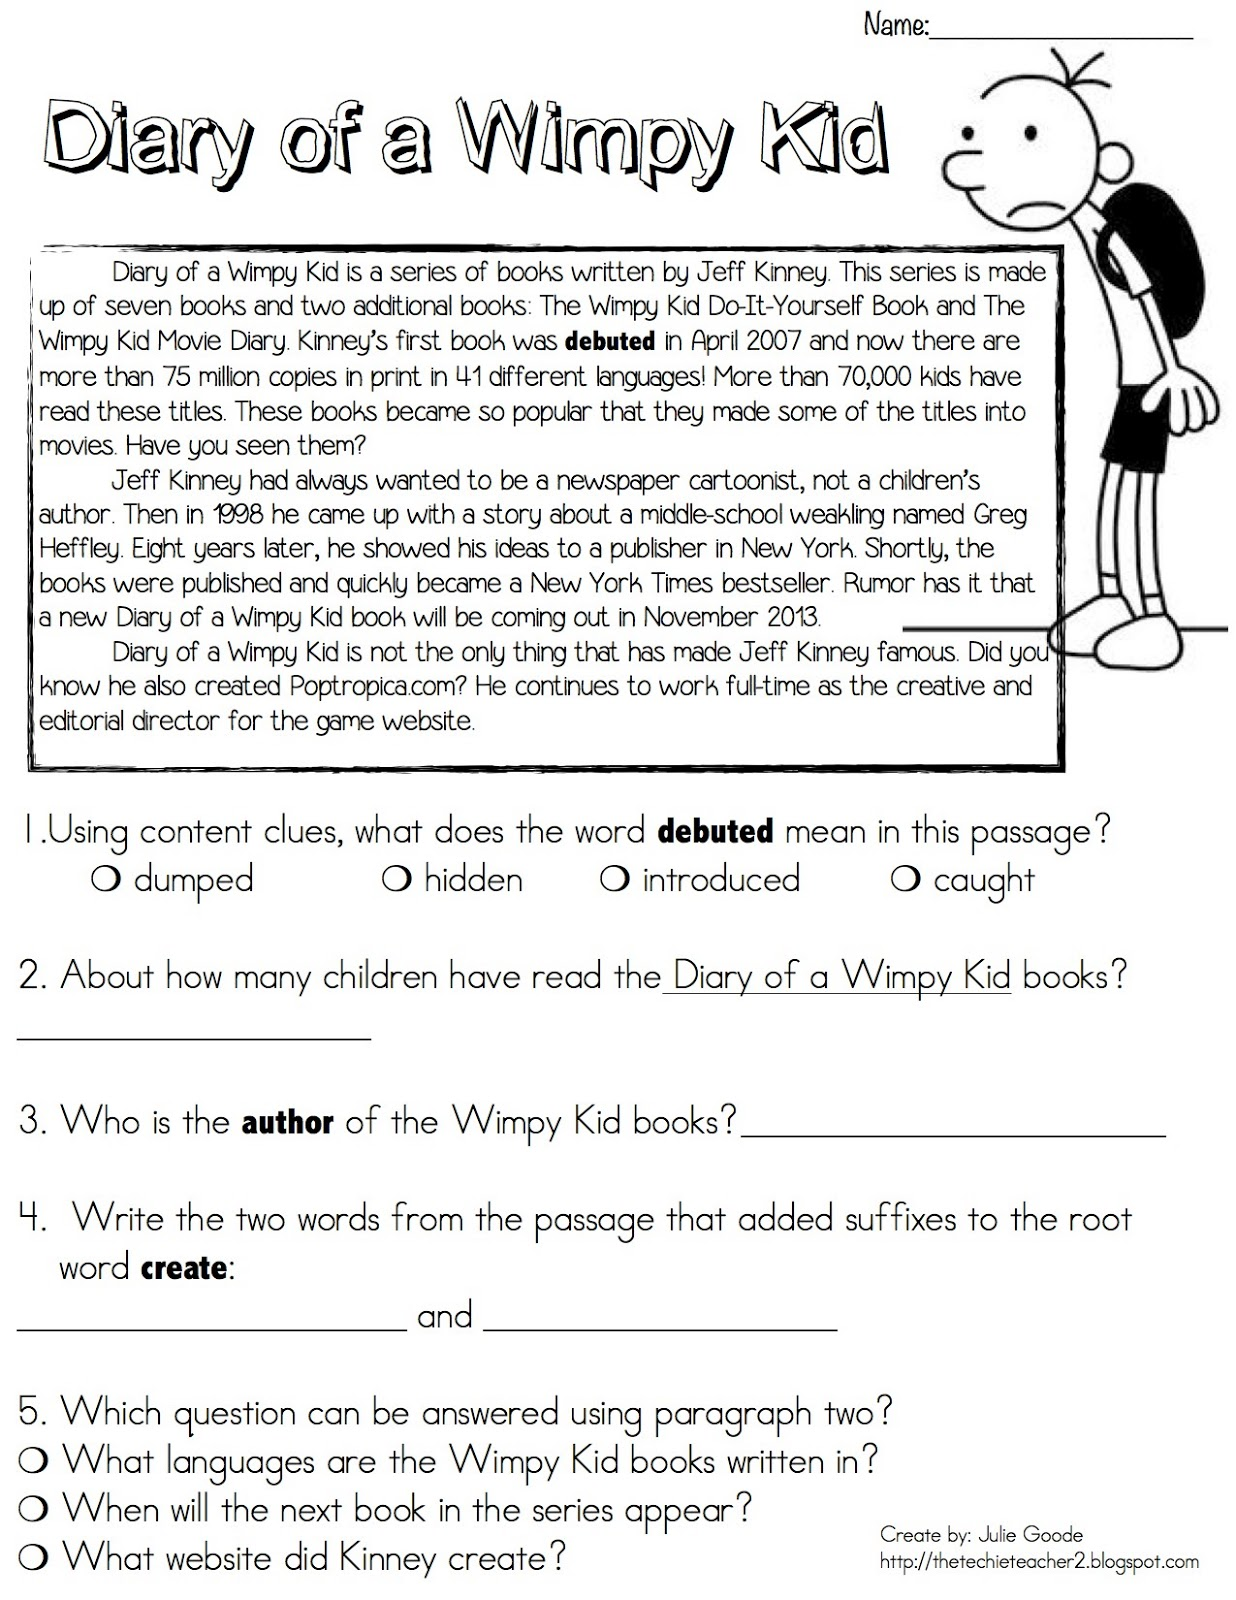 diary of a wimpy kid plot diagram code 3 mx7000 wiring cabin fever summary